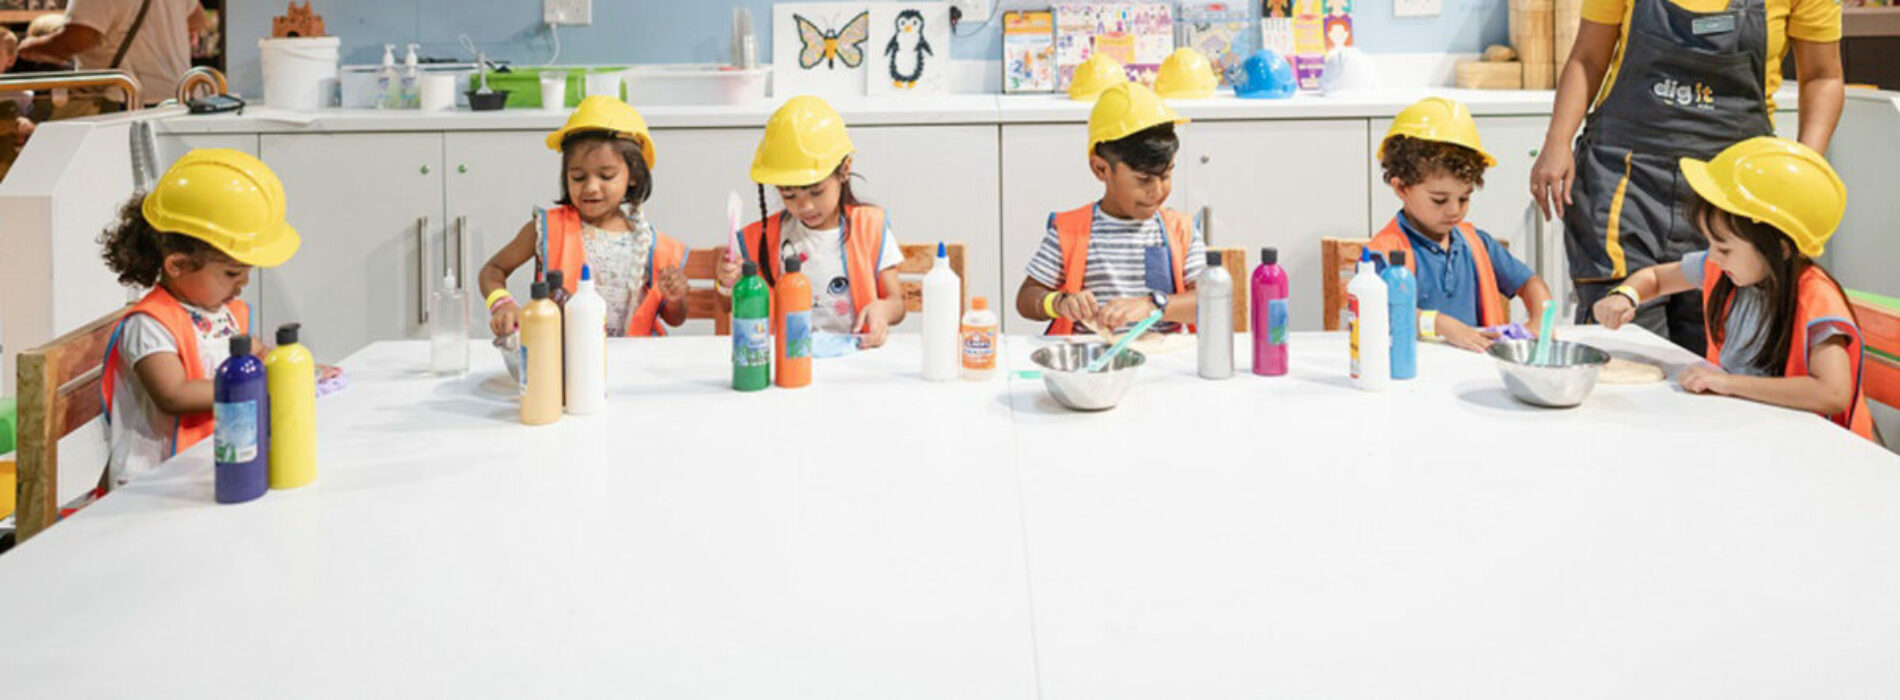 Daily fun at these interactive workshops for kids at Dig It